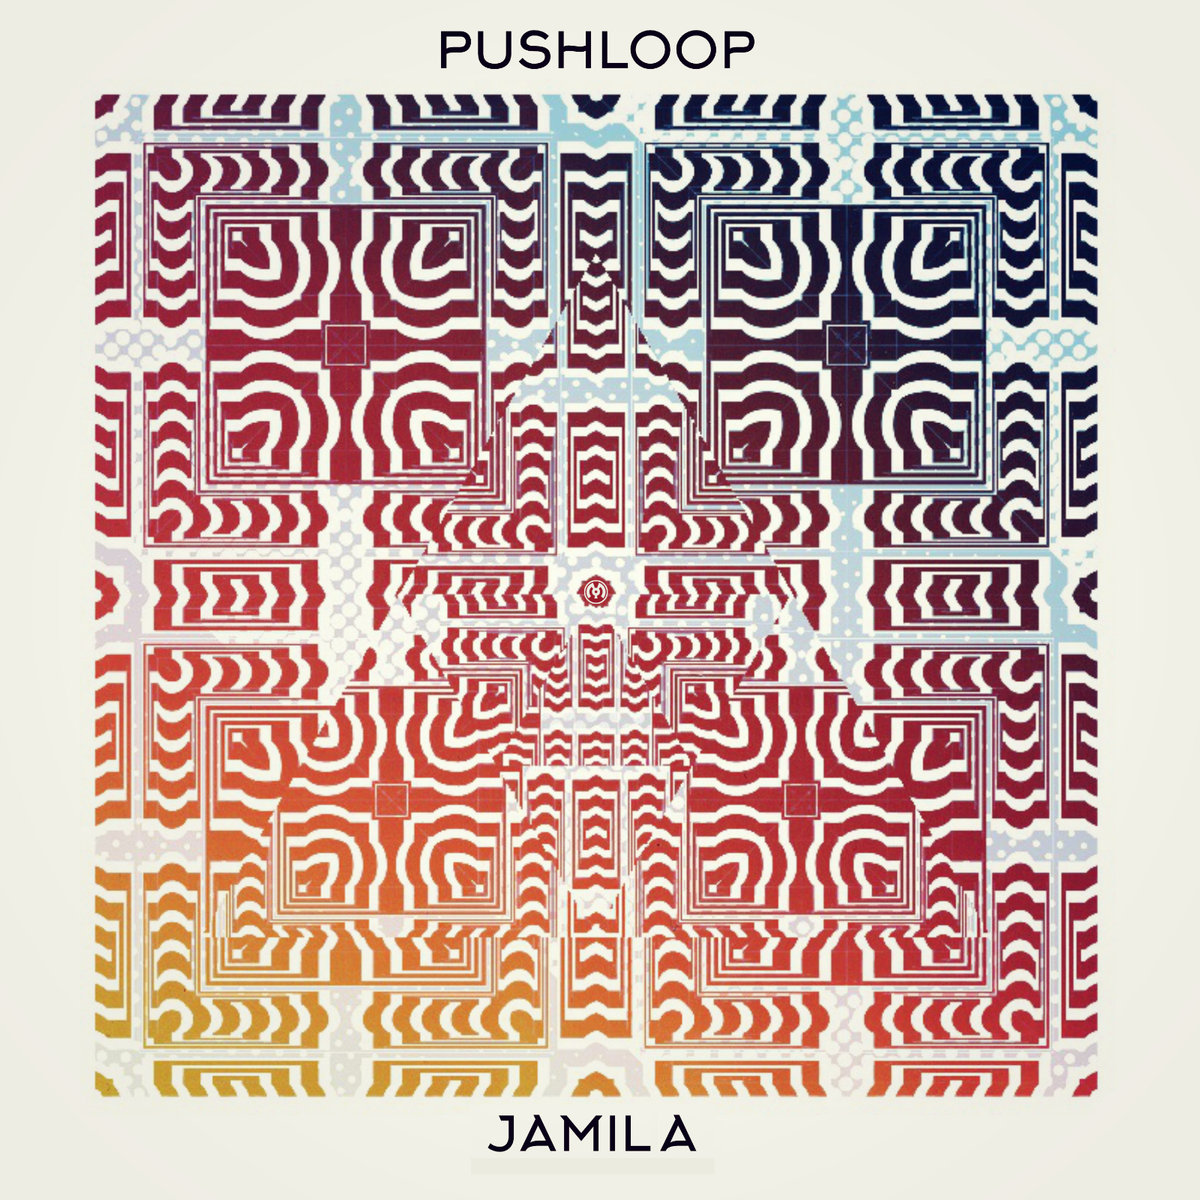 Pushloop - Matador @ 'Jamila' album (electronic, dubstep)